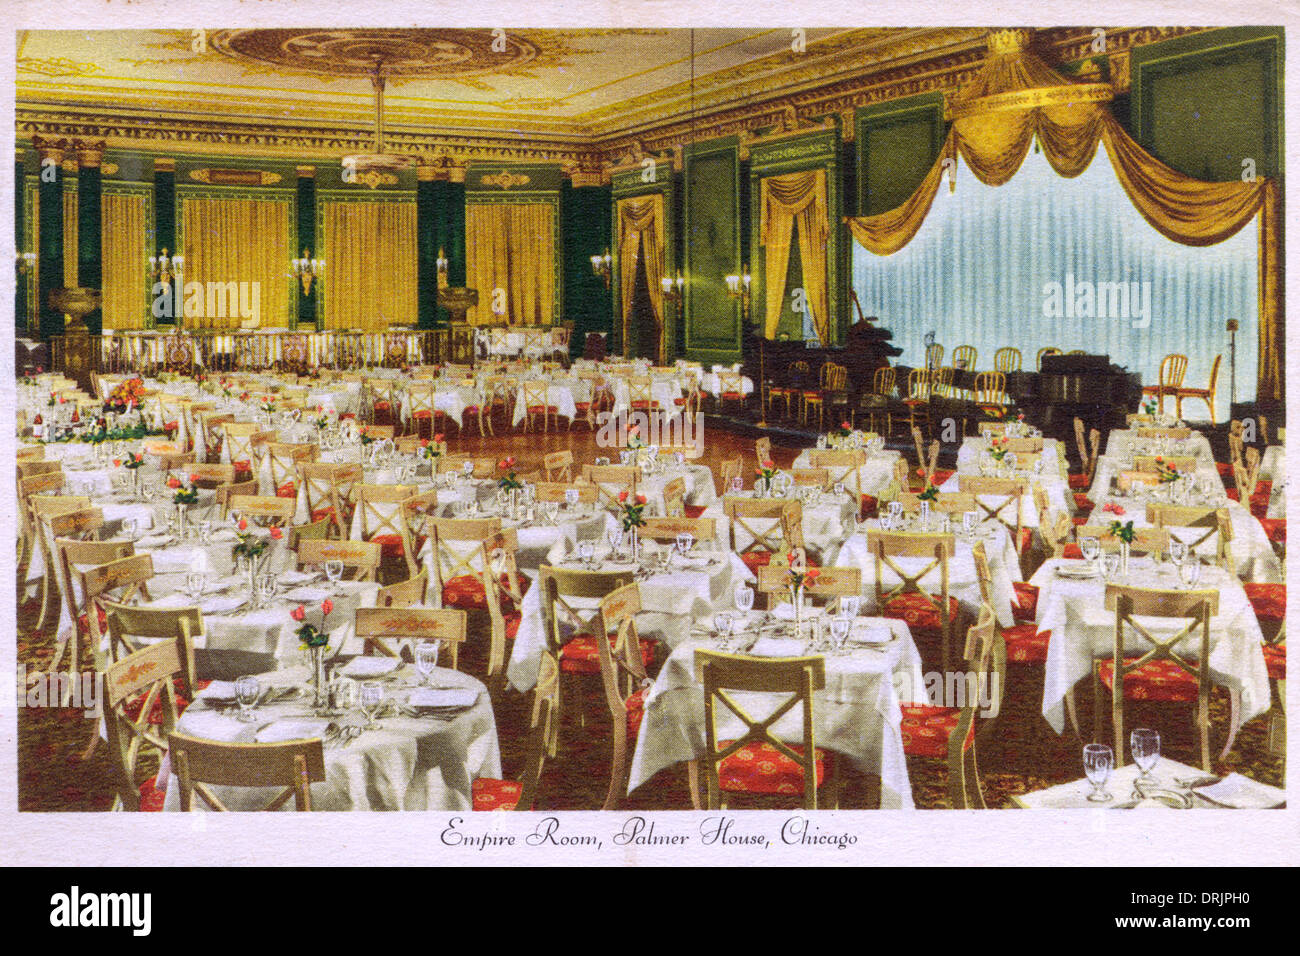 the empire room at the palmer house hotel in chicago stock photo